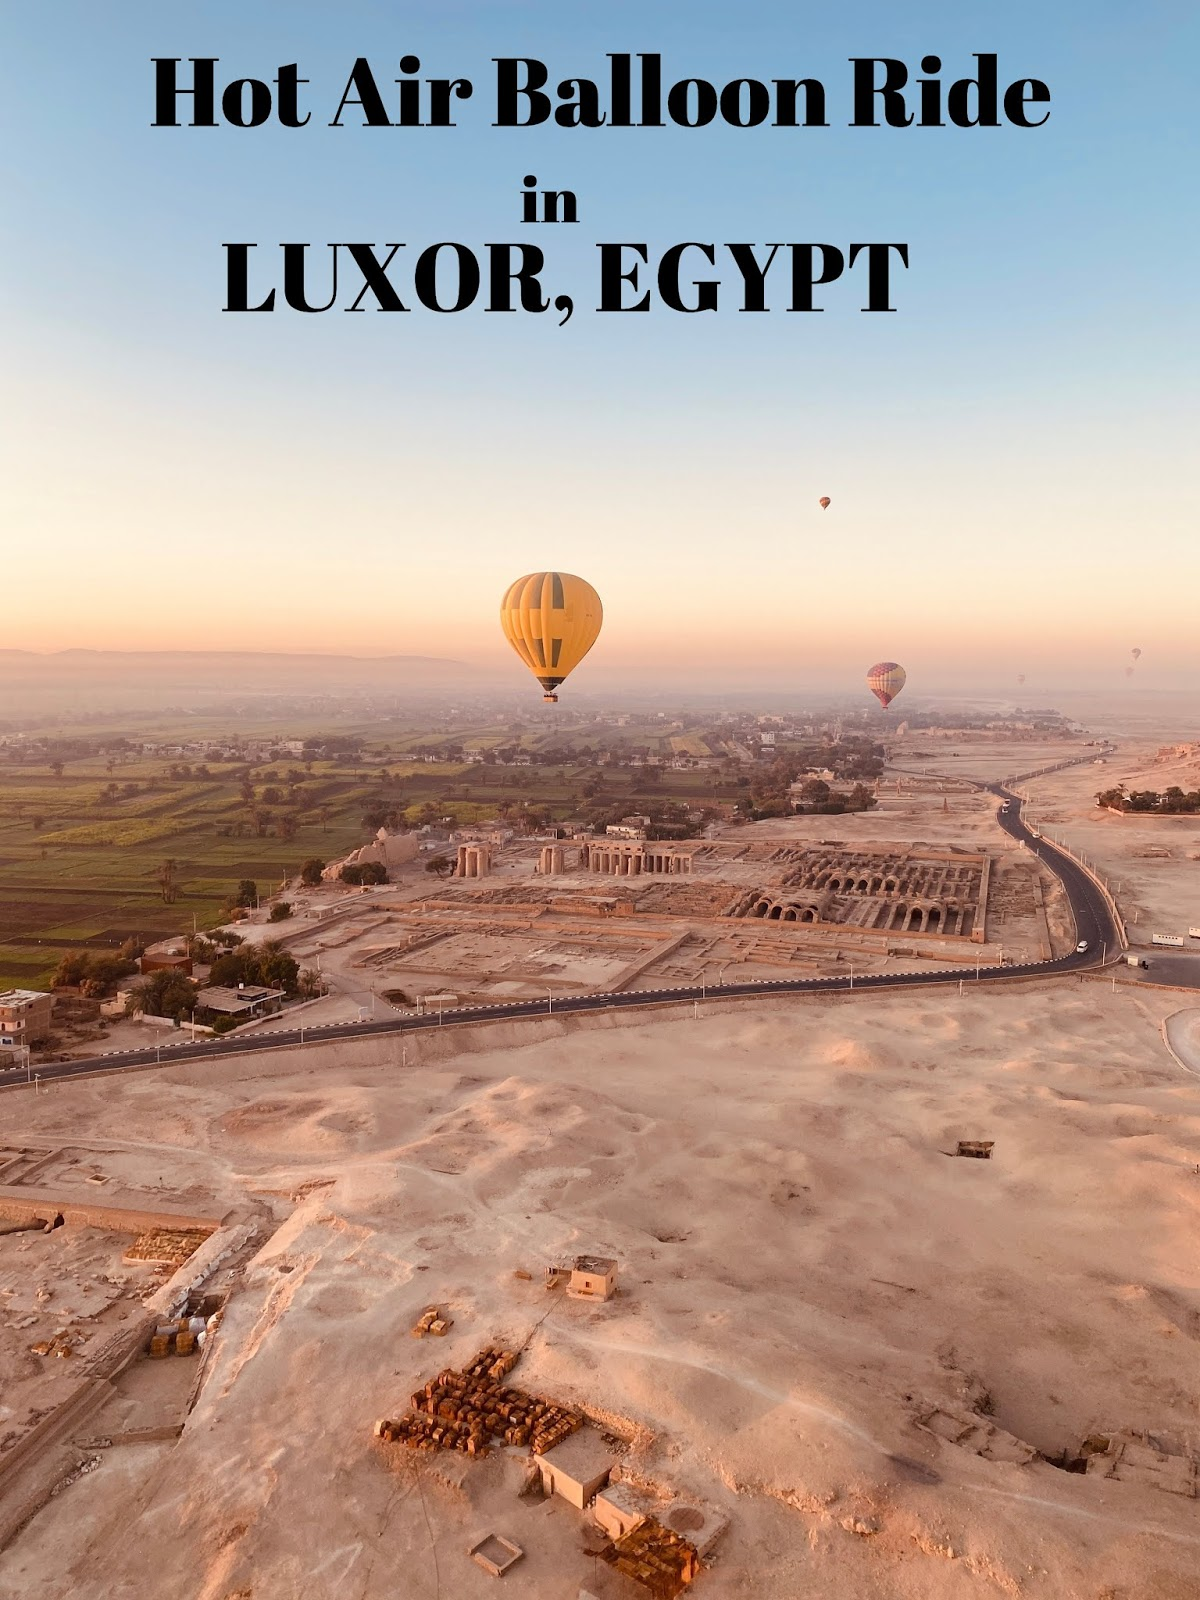 egypt hot air balloon ride, egypt travels, egyptian tombs, HodHod Soliman Hot Air Balloon Ride, hot air balloon ride, luxor hot air balloon ride, tombs, travel to egypt, king tuts tomb, valley of the kings, valley of the queen, luxor tombs, sunrise hot air balloon ride, balloon ride in luxor, egypt balloons,